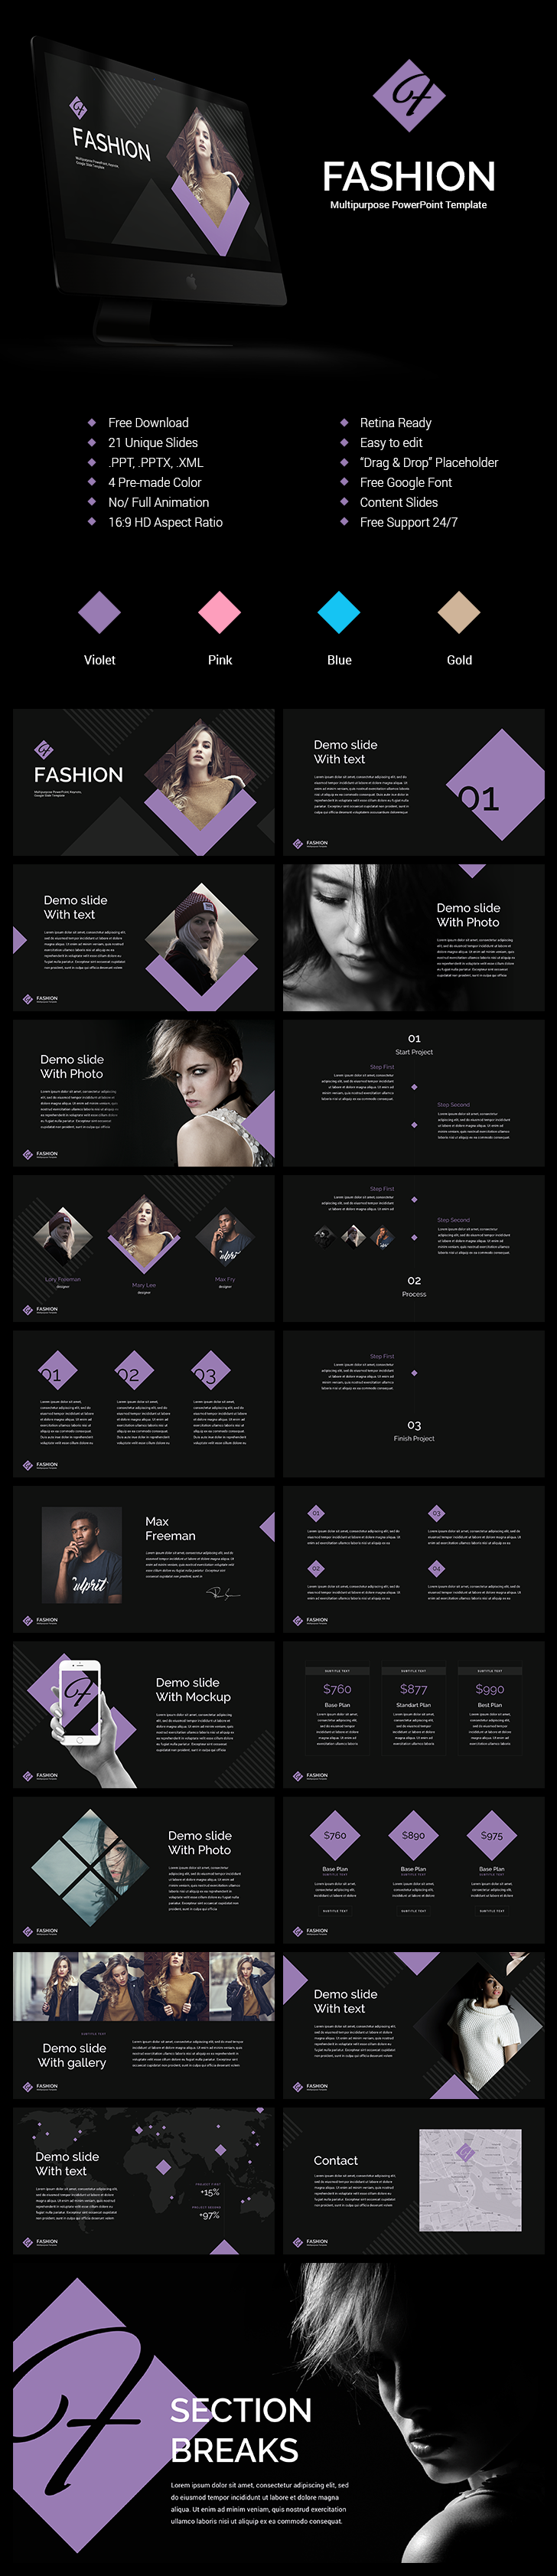 Fashion powerpoint templates free download 21 unique slides 4 fashion powerpoint templates free download 21 unique slides 4 pre made color toneelgroepblik Gallery